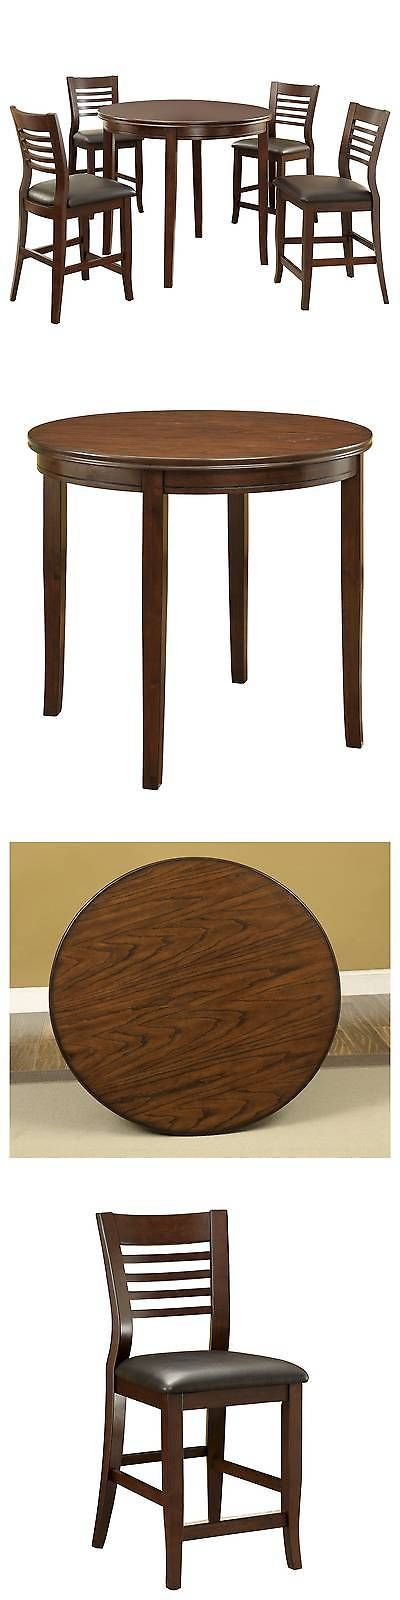 Sets 98478: 5-Piece Simple Transitional Counter Height Table Set - Brown Cherry -> BUY IT NOW ONLY: $999.99 on eBay!